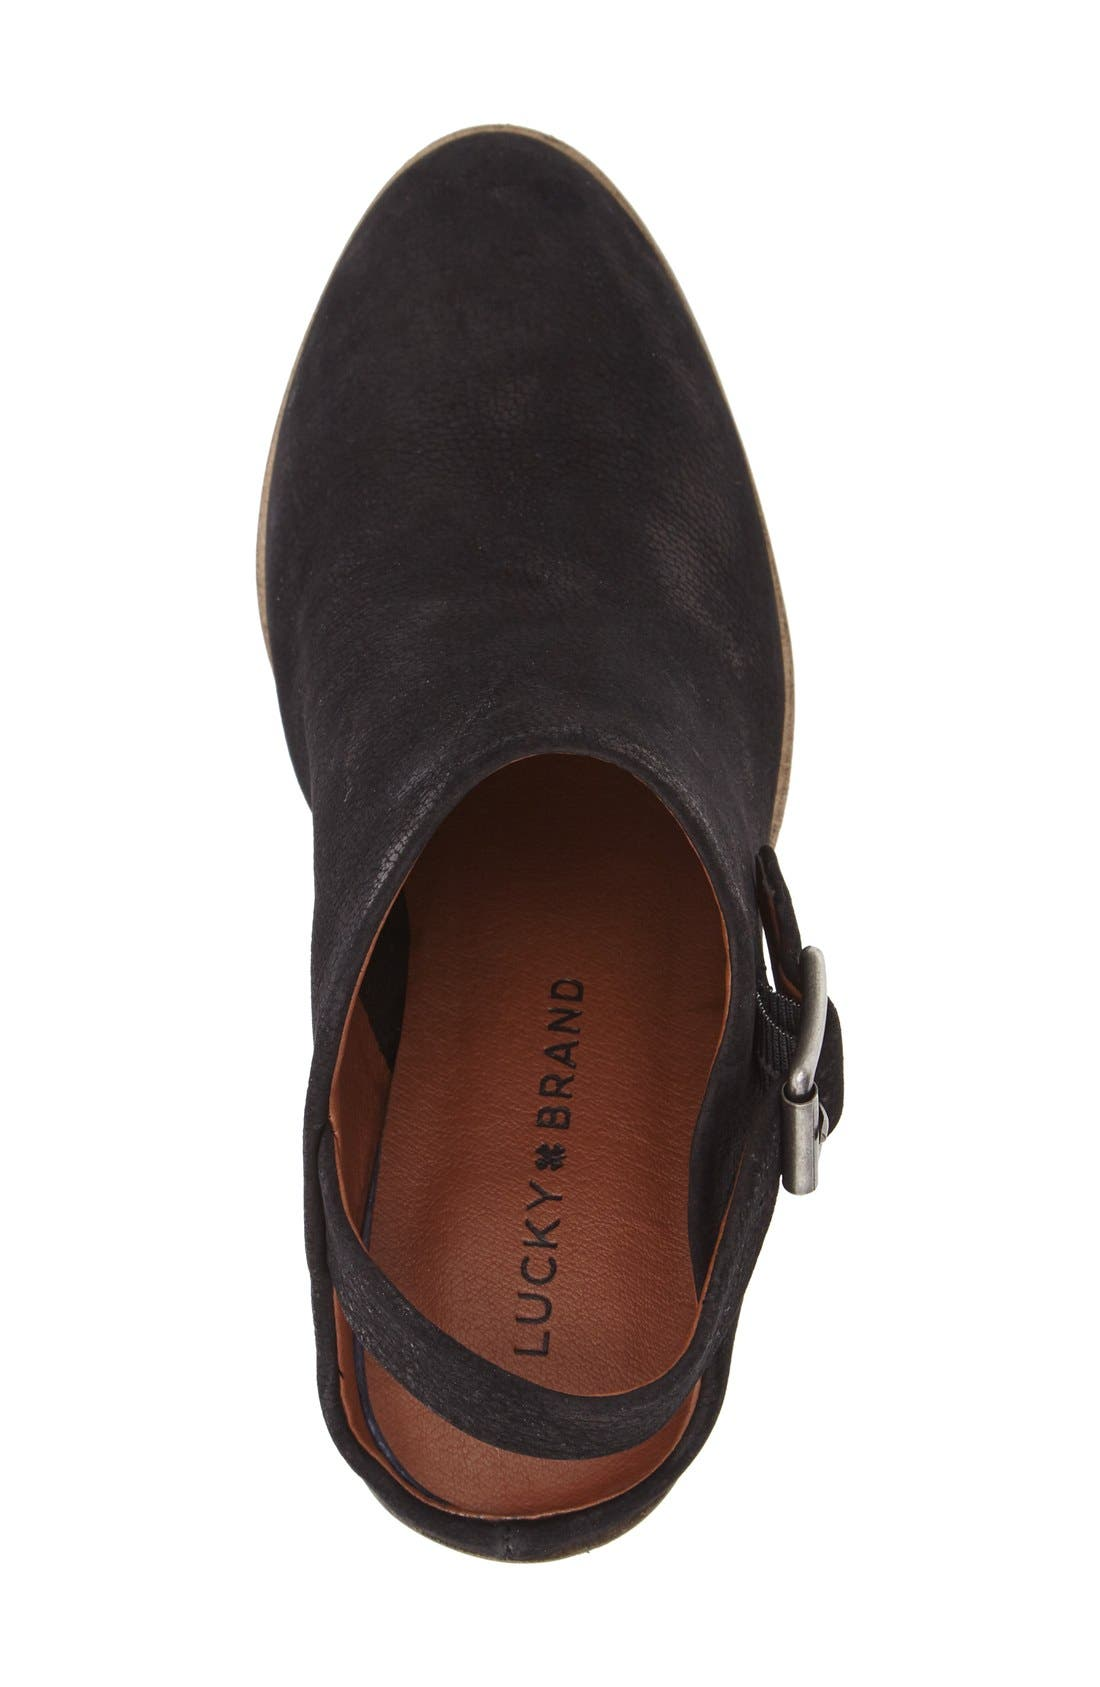 'Machiko' Slingback Clog,                             Alternate thumbnail 3, color,                             Black Leather